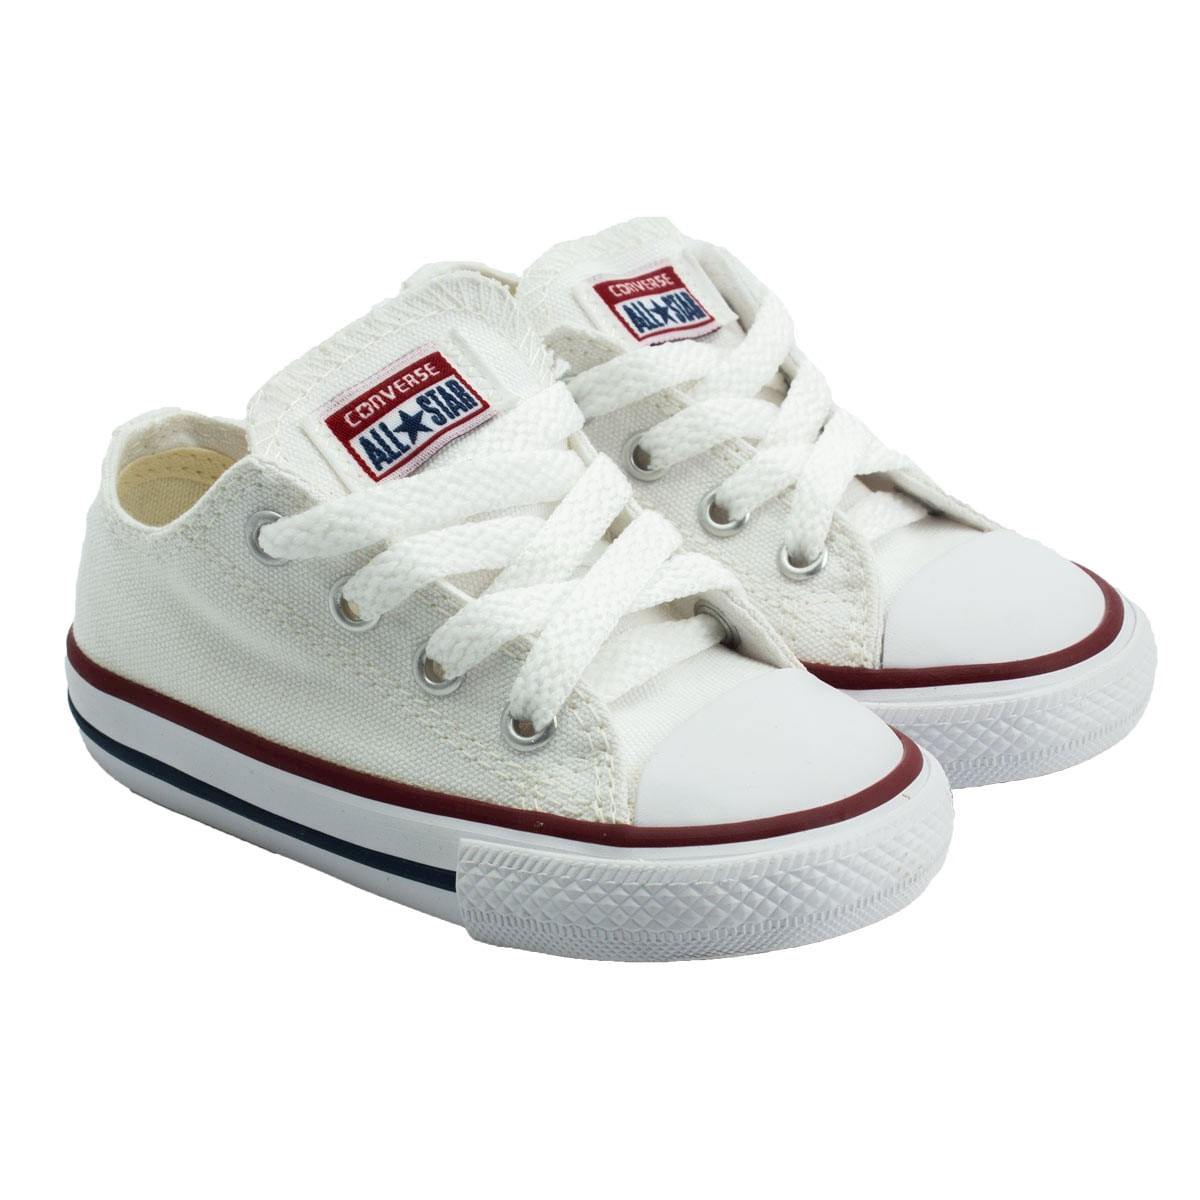 Tenis-Infantil-Chuck-Taylor-Converse-All-Star